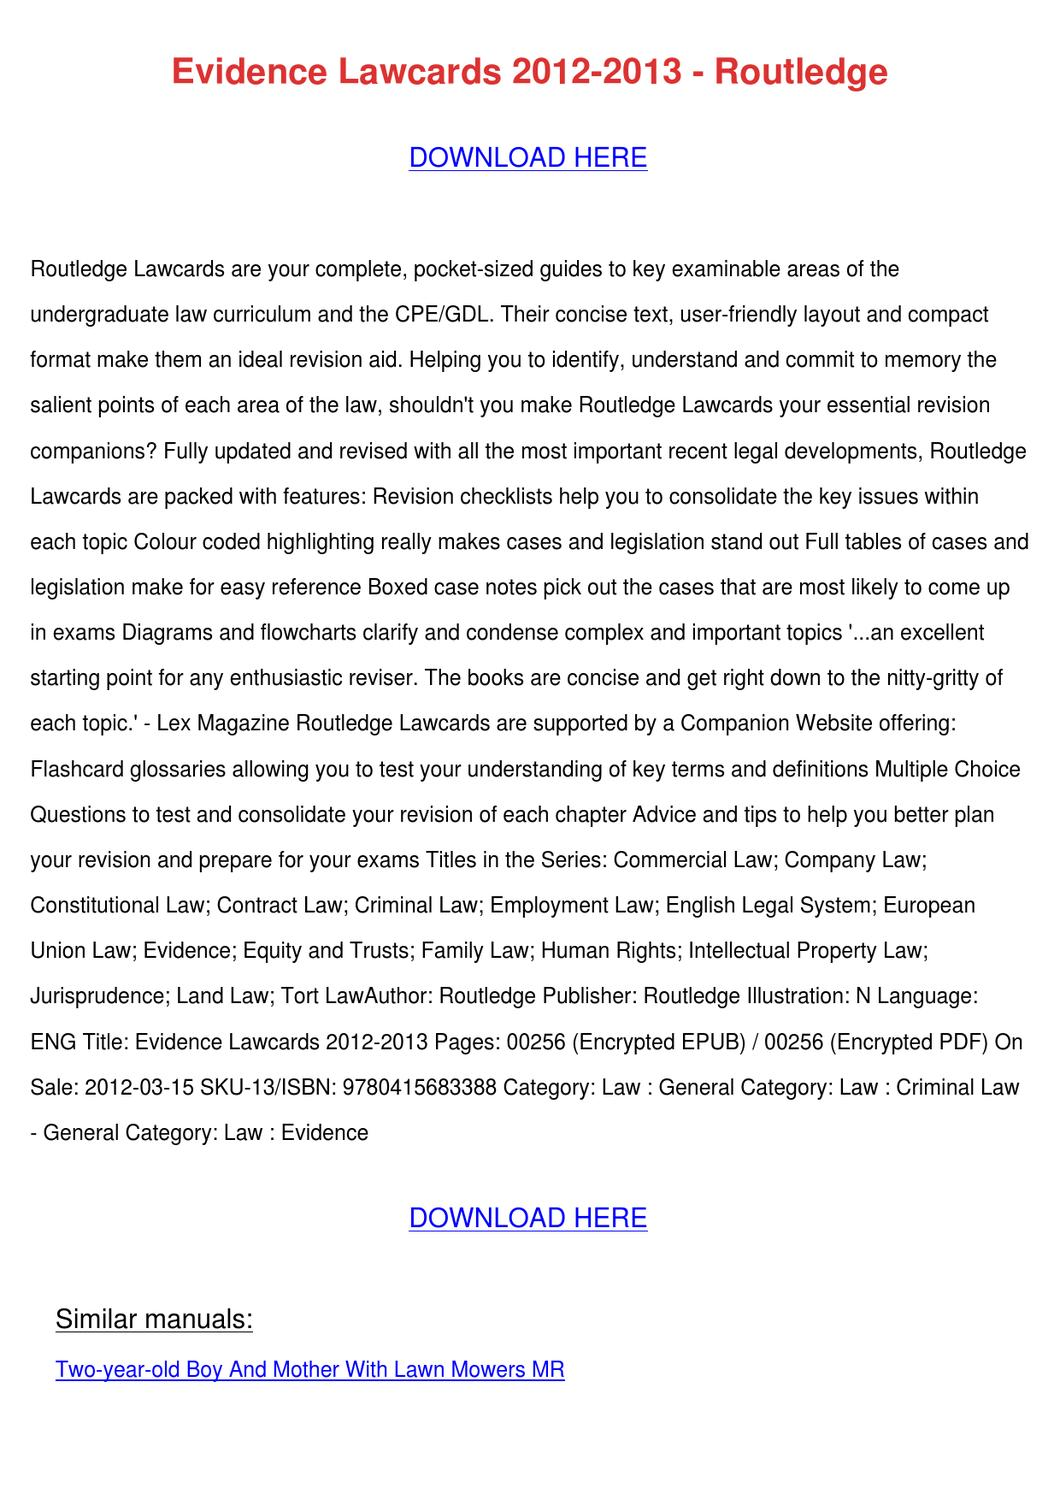 Evidence Lawcards 2012 2013 Routledge by JurgenHembree - issuu